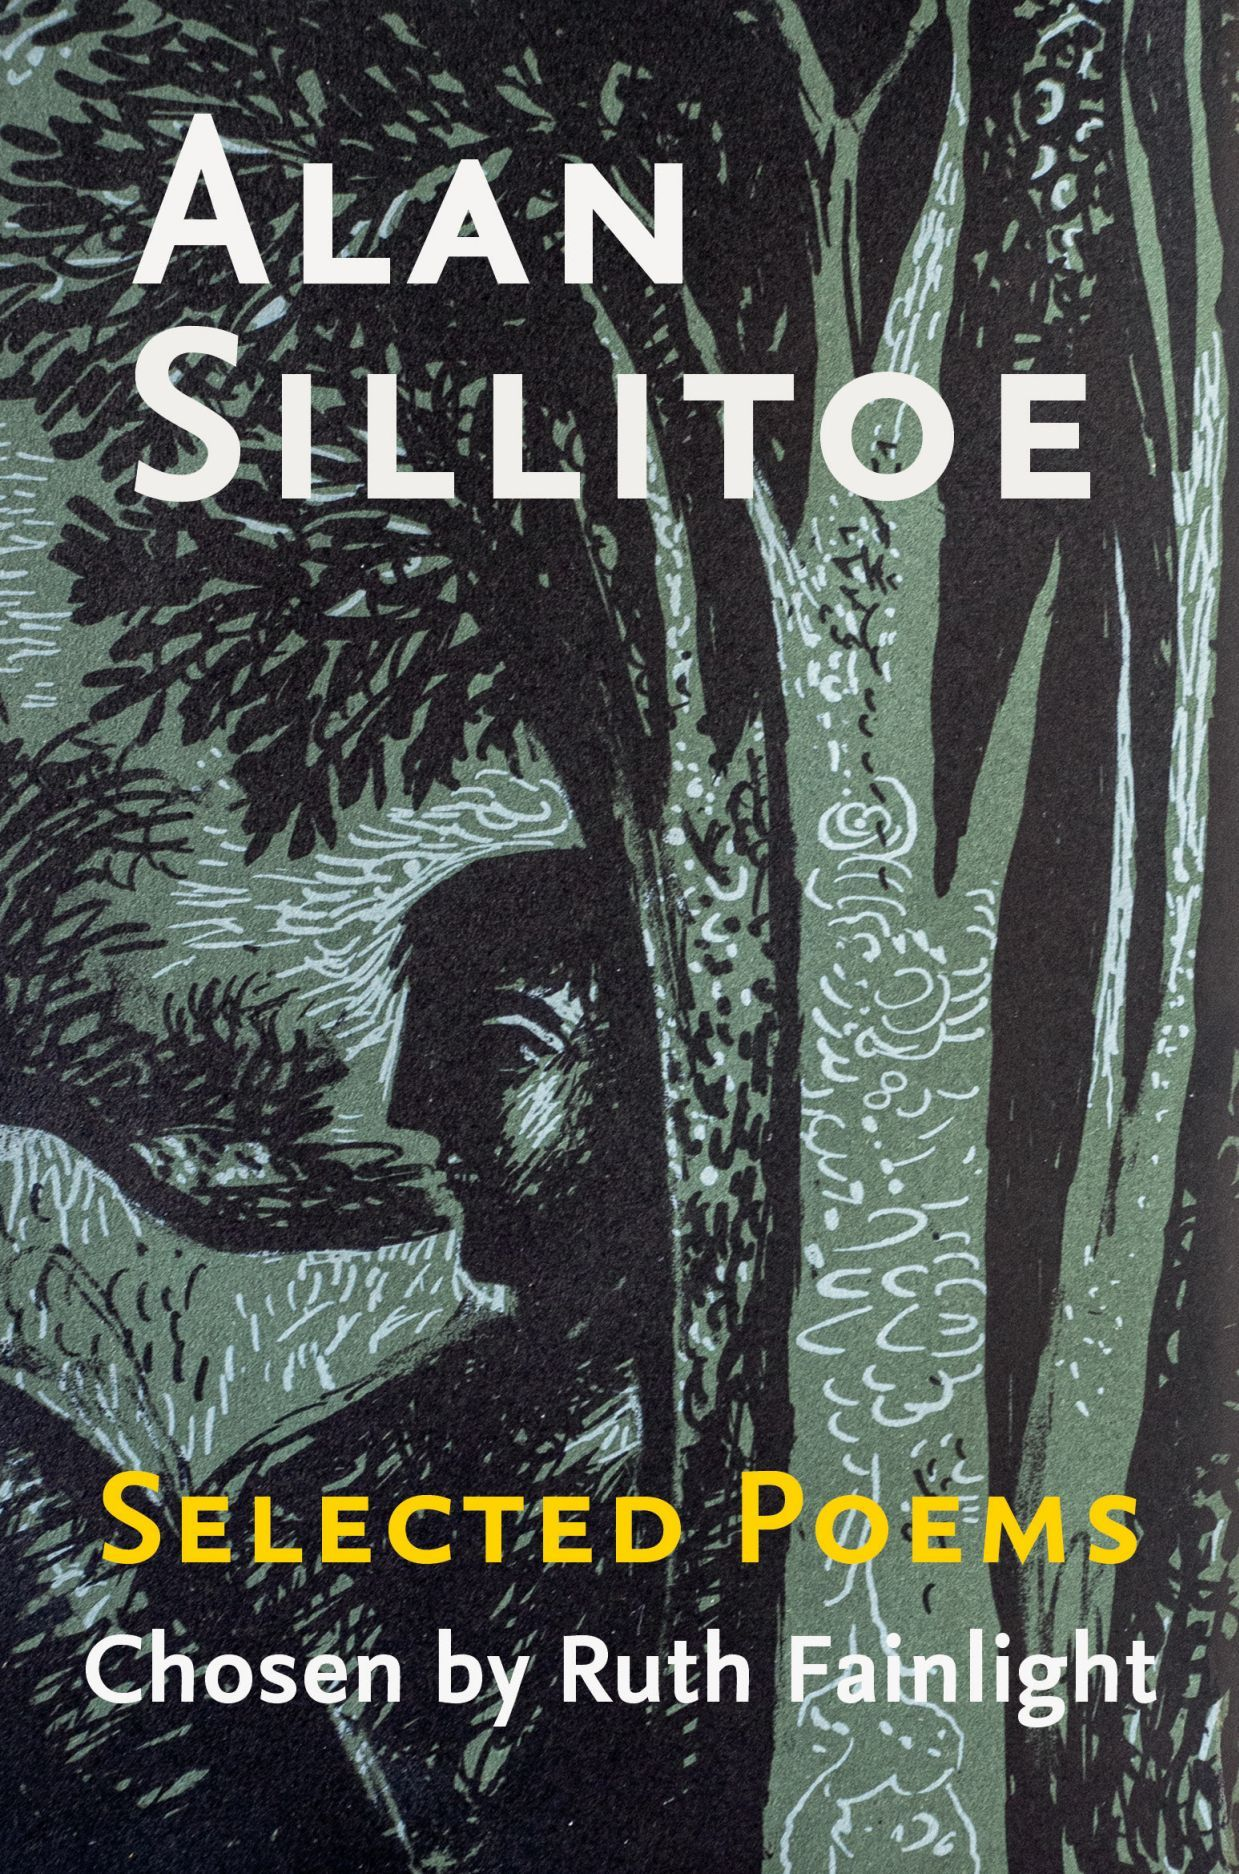 Alan Sillitoe Selected Poems: Selected Poems Chosen by Ruth Fainlight